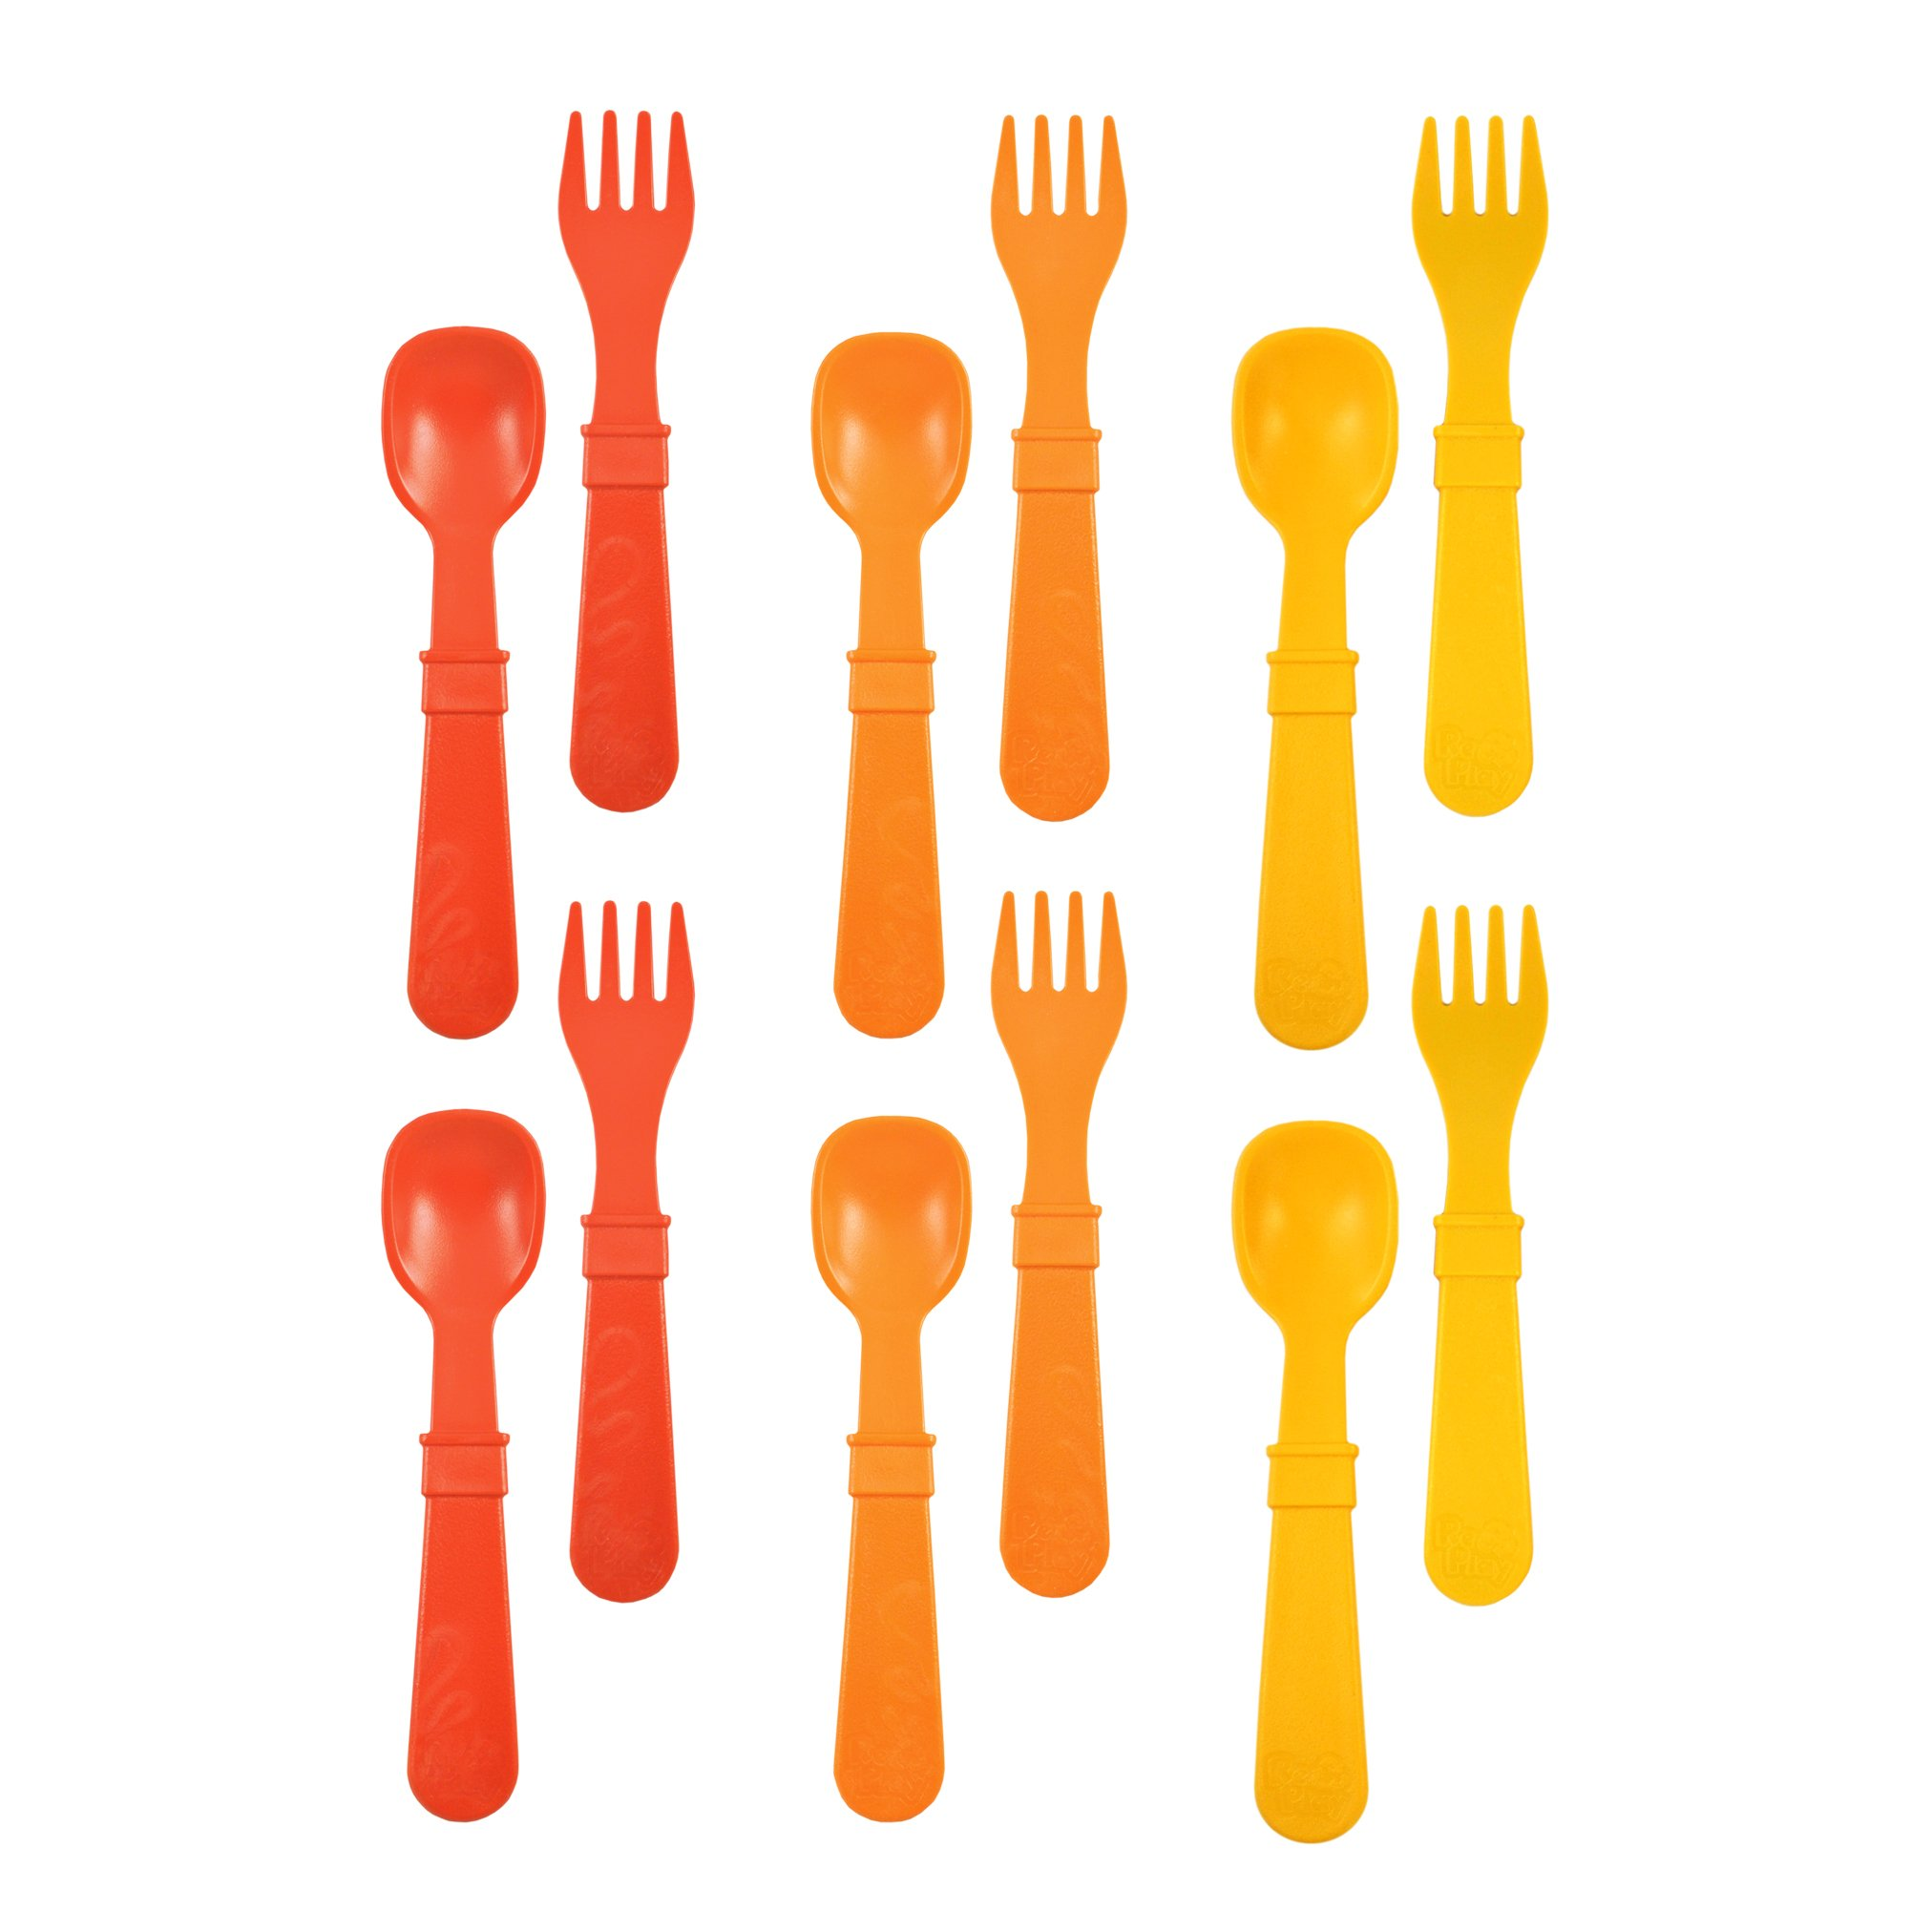 RE-PLAY Made in The USA 12pk Fork and Spoon Utensil Set for Easy Baby, Toddler, and Child Feeding in Red, Orange and Sunny Yellow   Made from Eco Friendly Heavyweight Recycled Milk Jugs   (Fall)